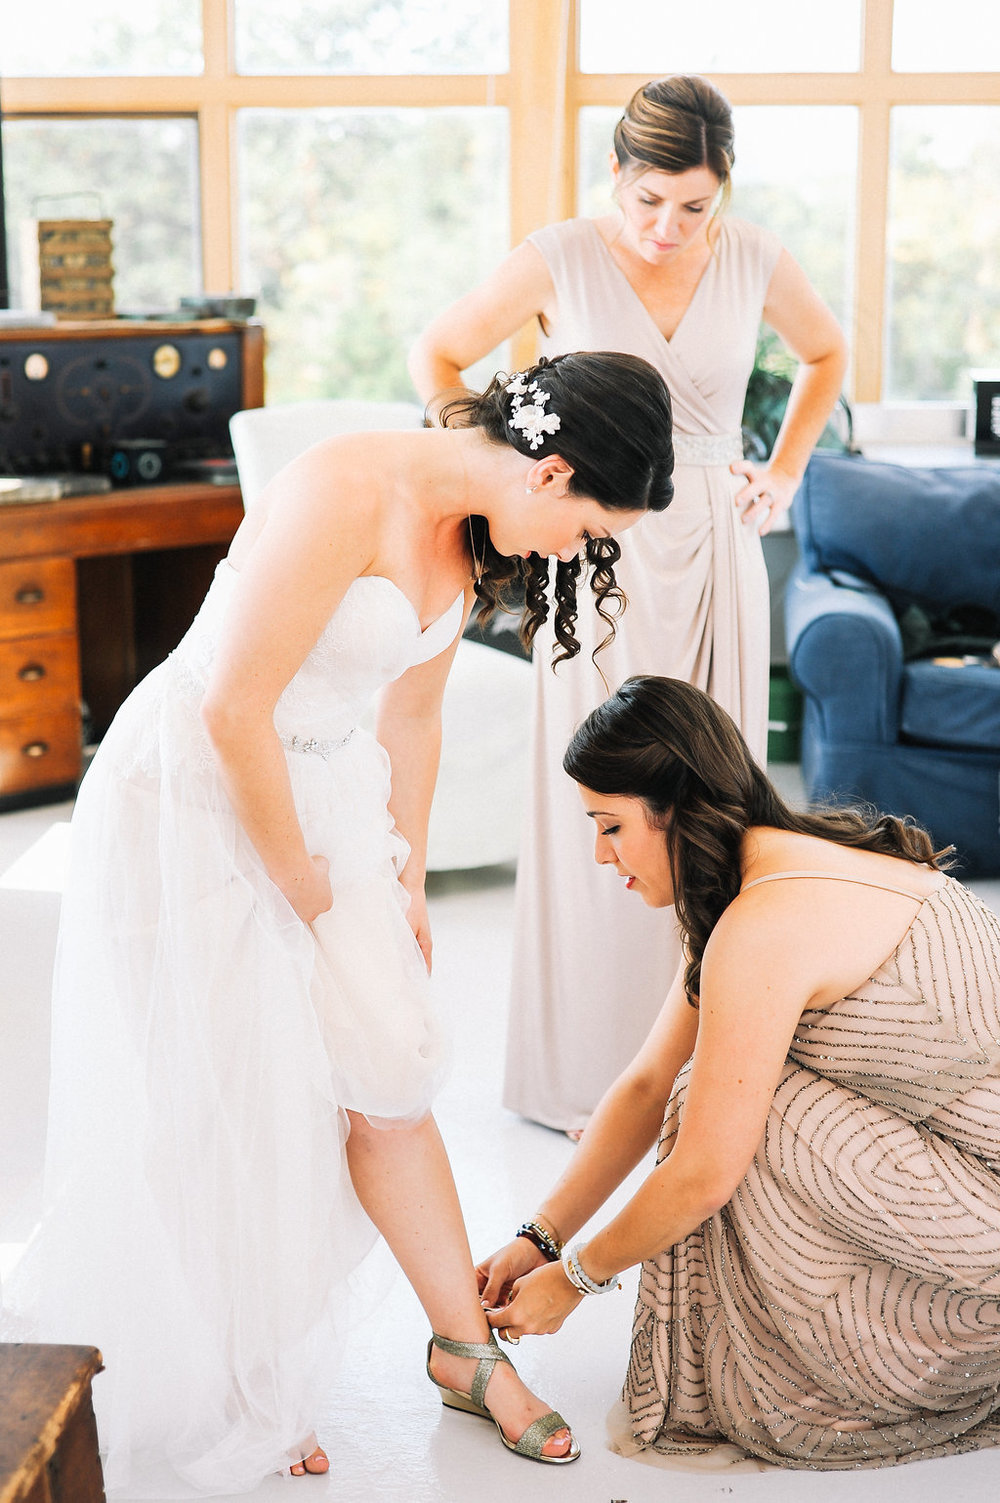 GettingReady_Dragonline_Studios_Jamestown_RI_Wedding-45.jpg